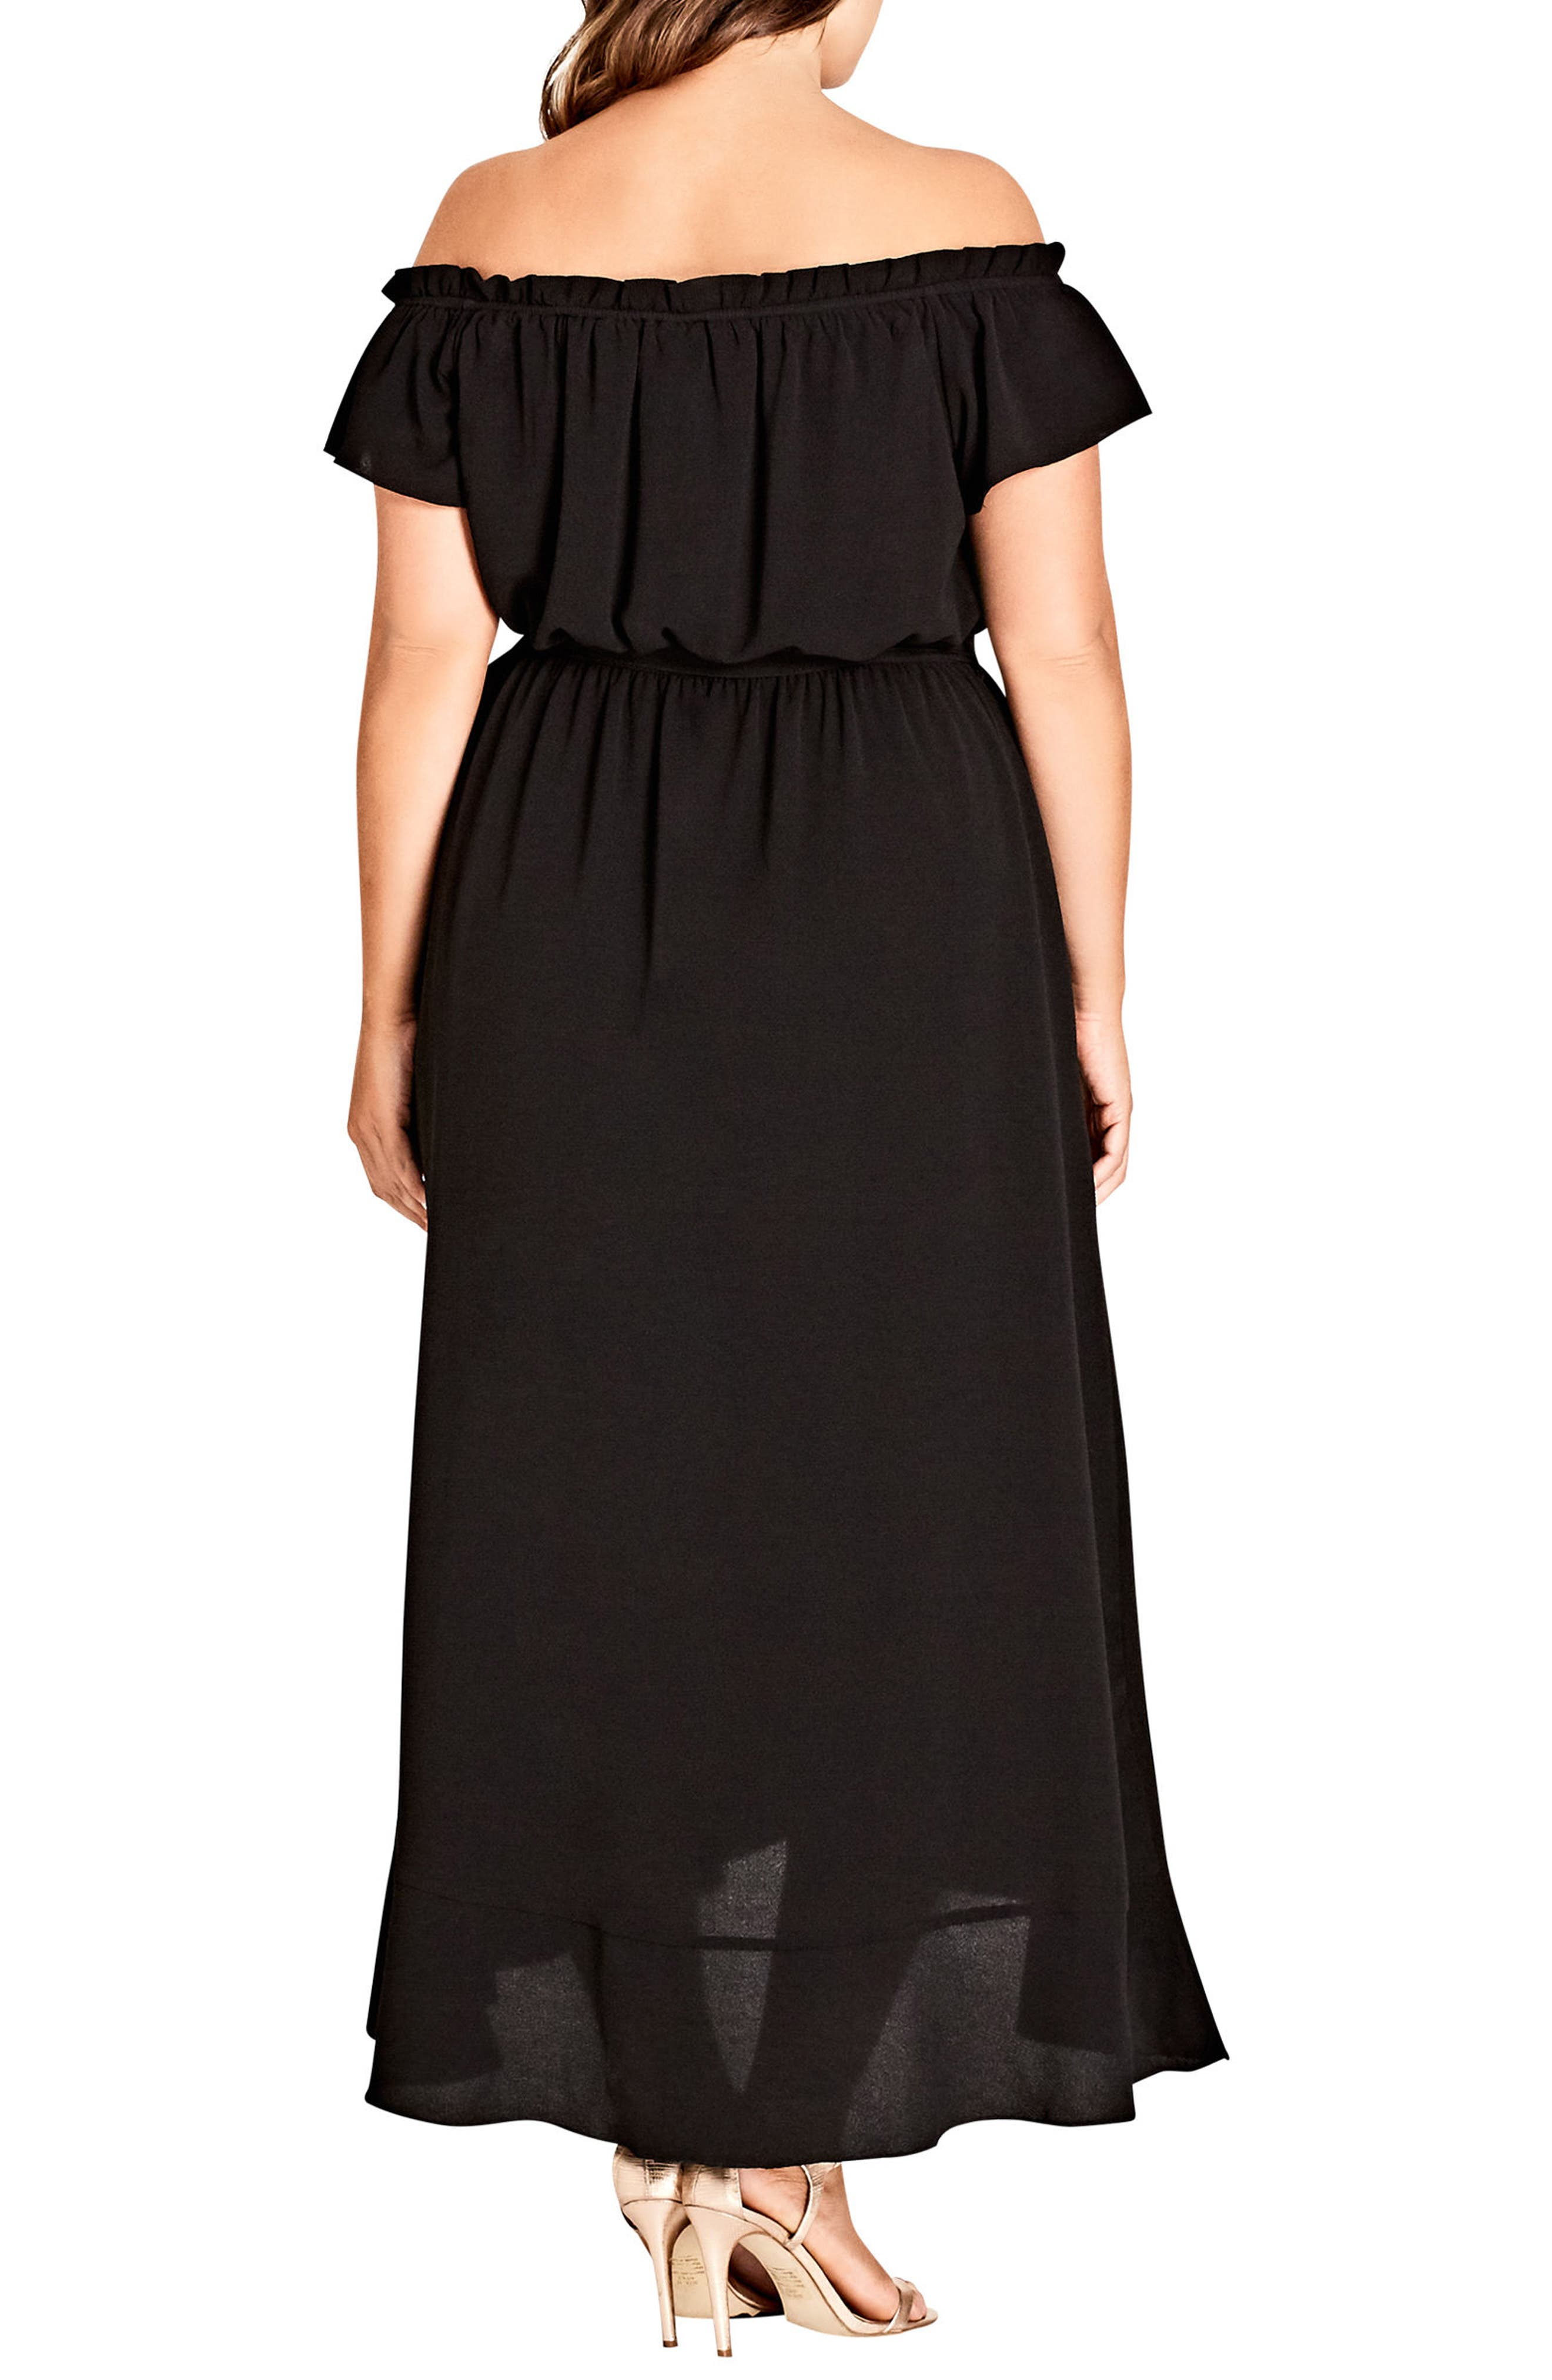 CITY CHIC,                             Ruffle Off the Shoulder Dress,                             Alternate thumbnail 2, color,                             006